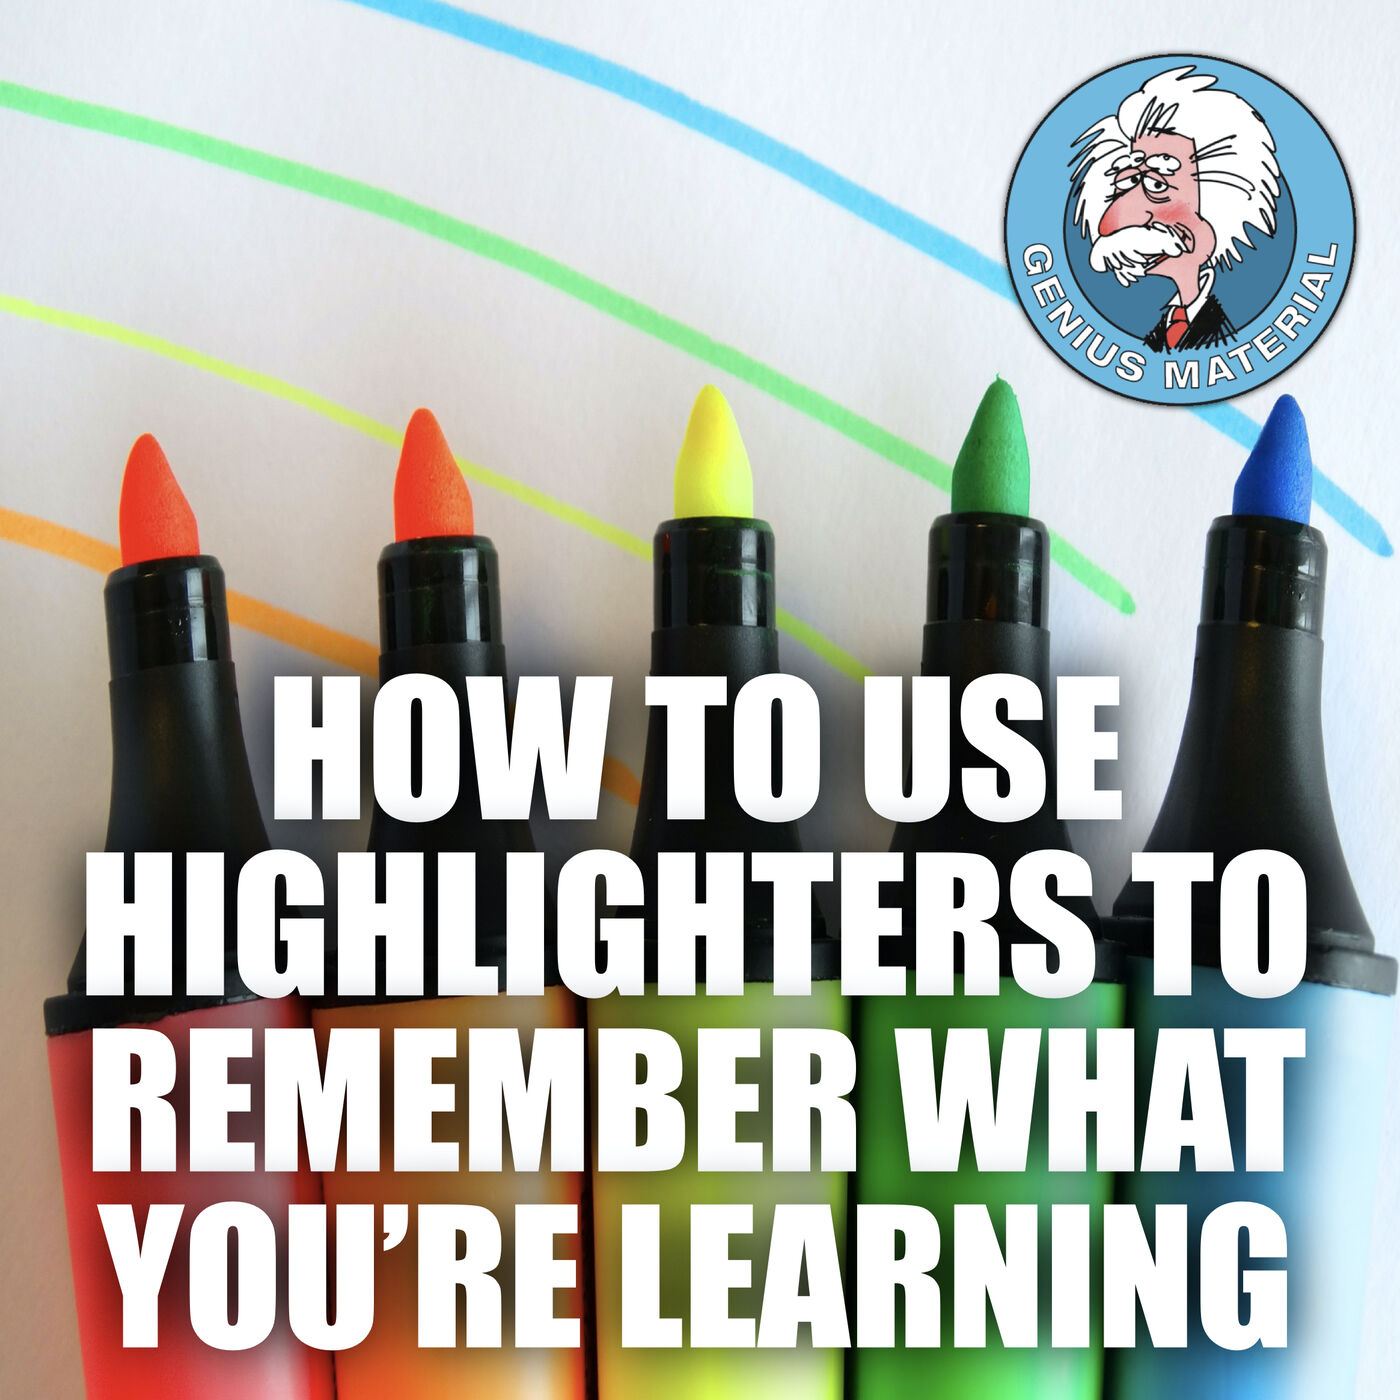 How to use highlighters to remember what you're learning